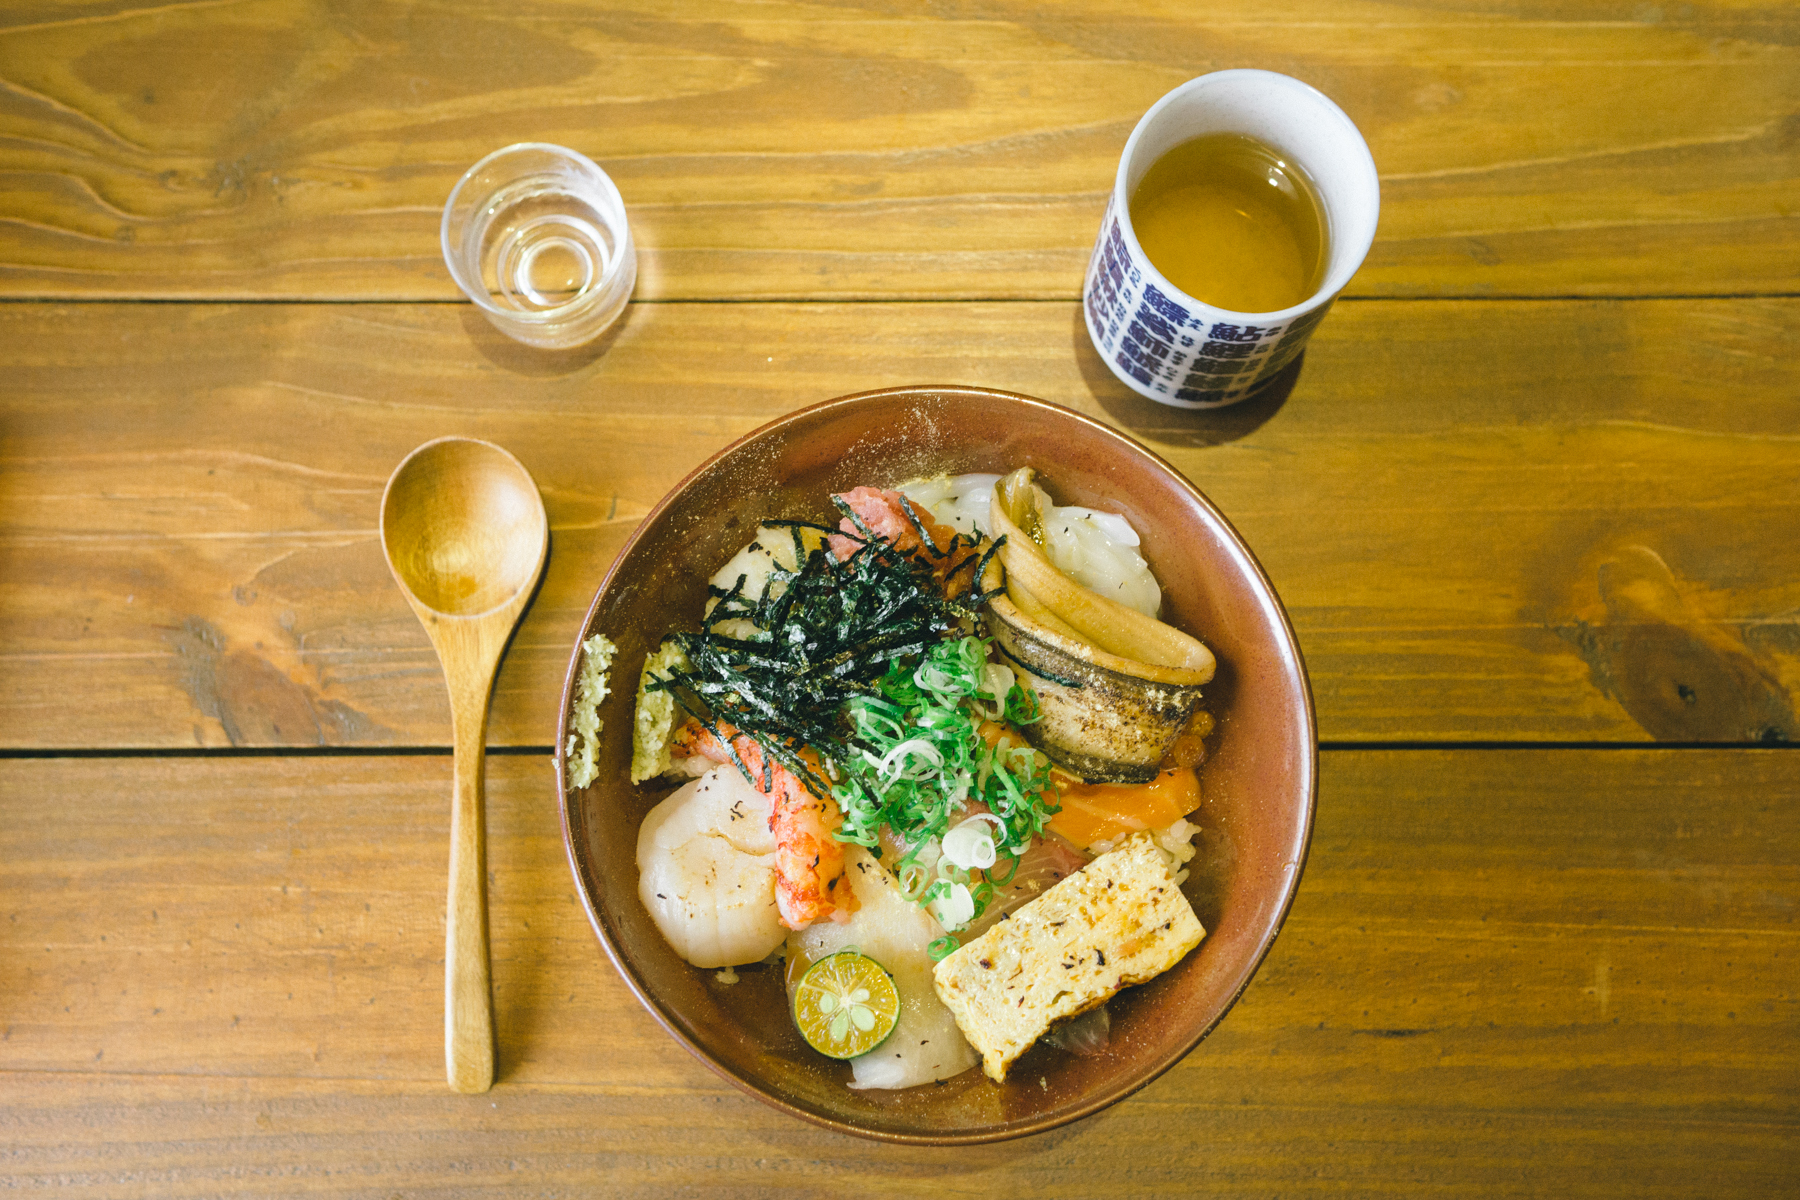 taipei-taiwan-瞞著爹三店-best-donburi-sushi-japanese-rice-bowl-restaurant-4